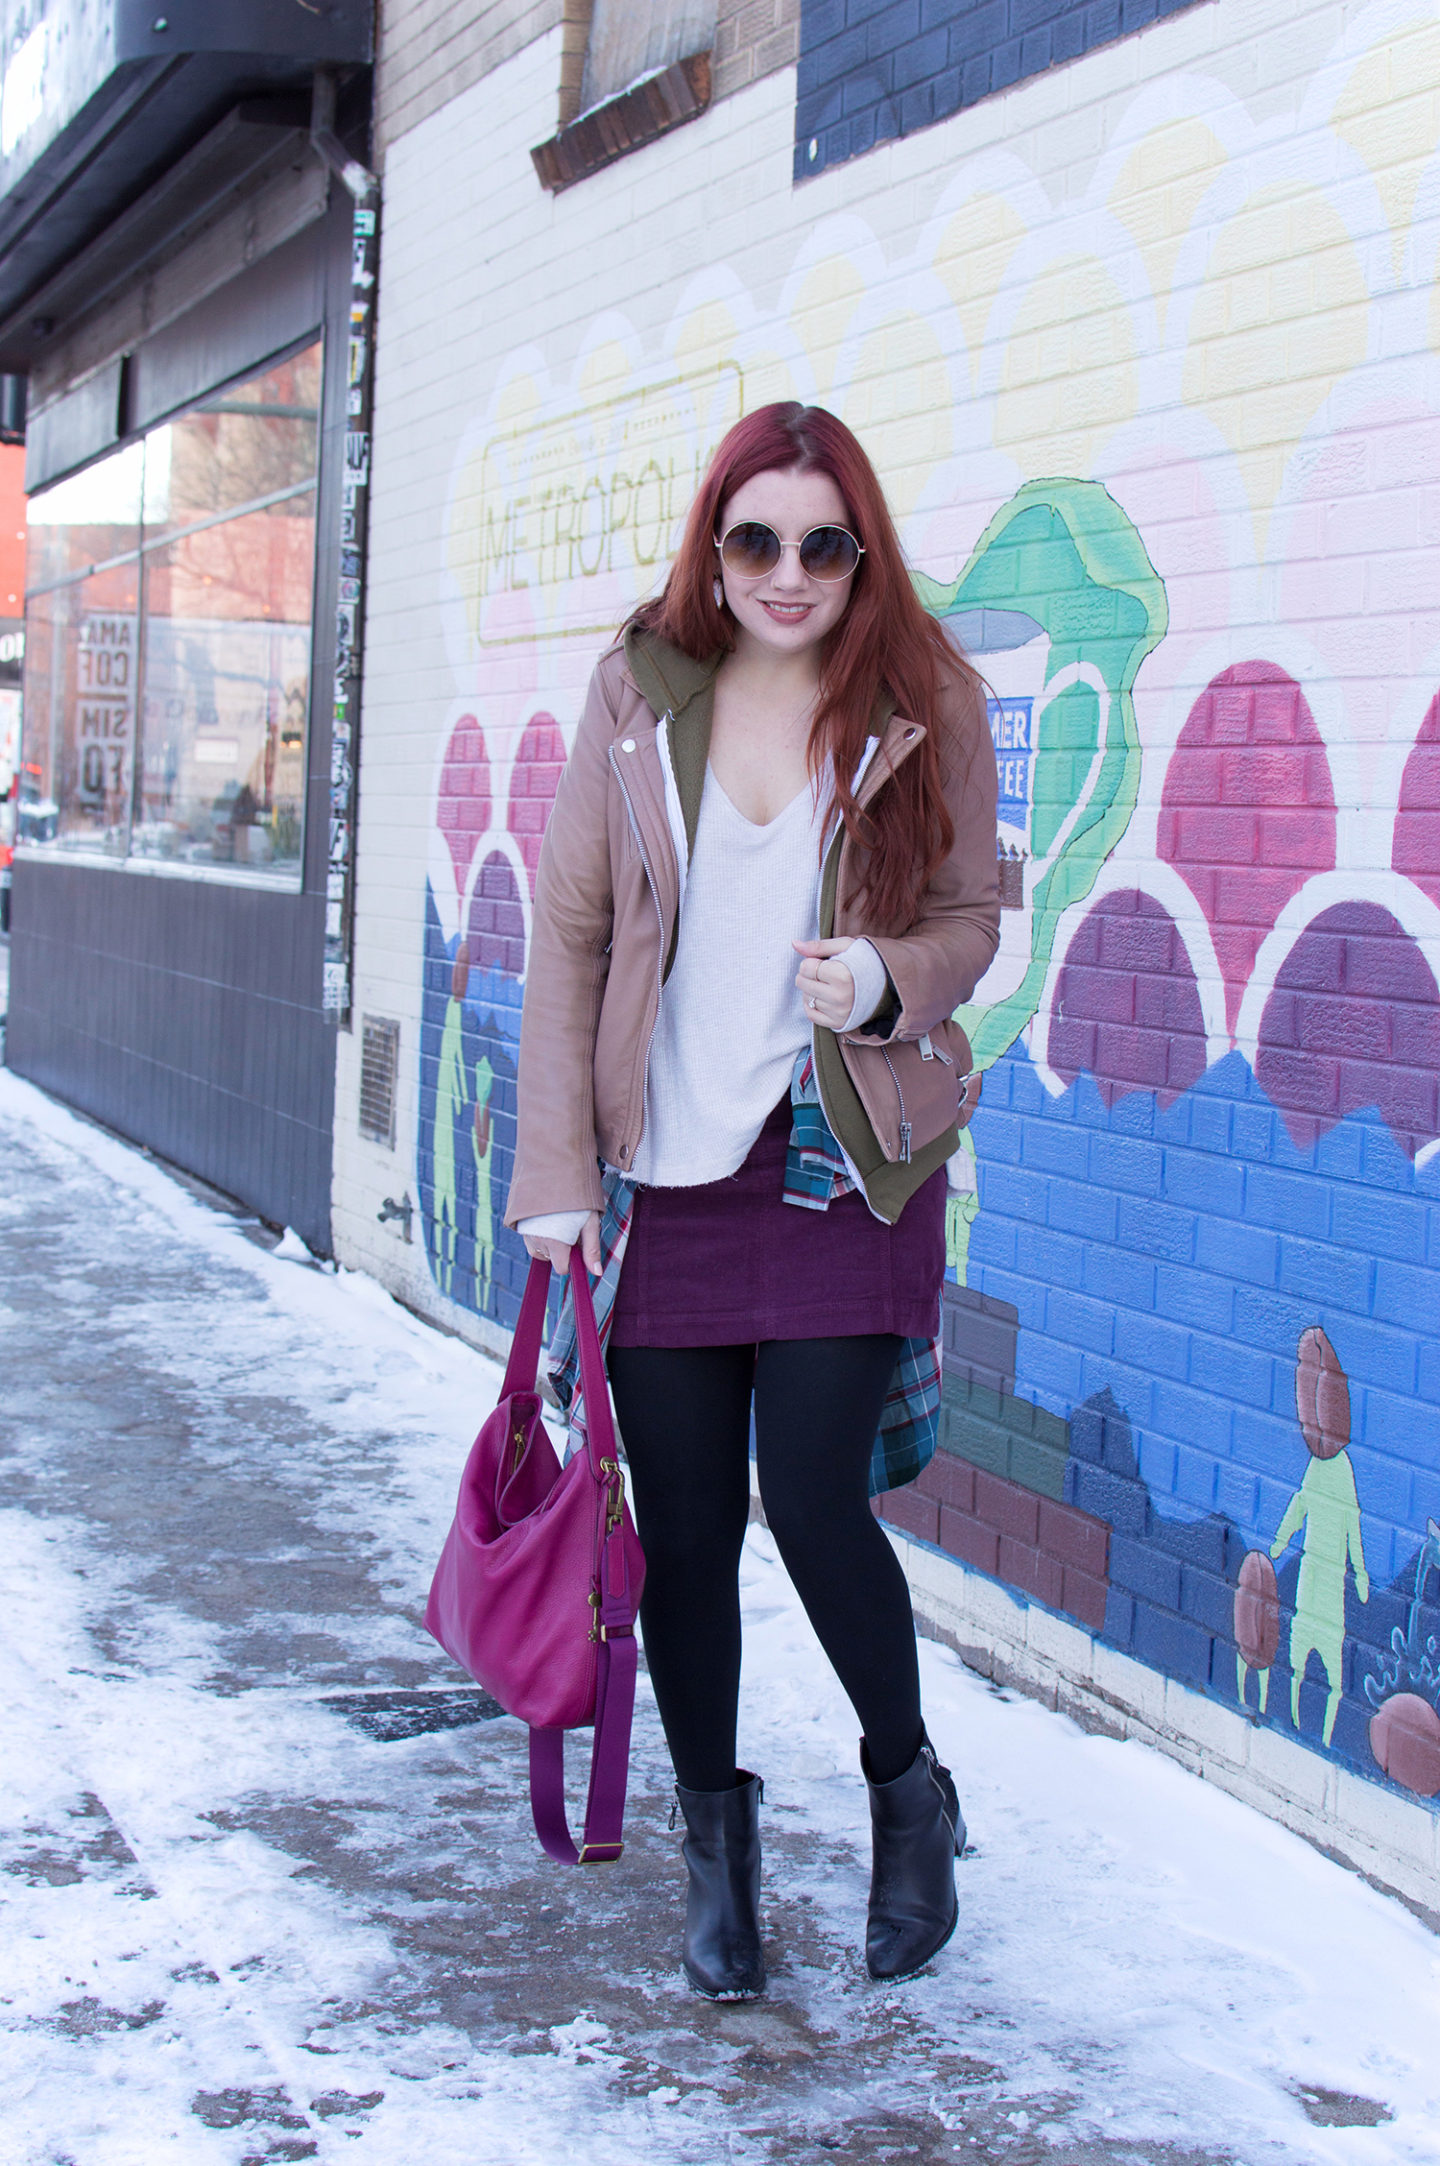 Skirts, South Broadway & Snow